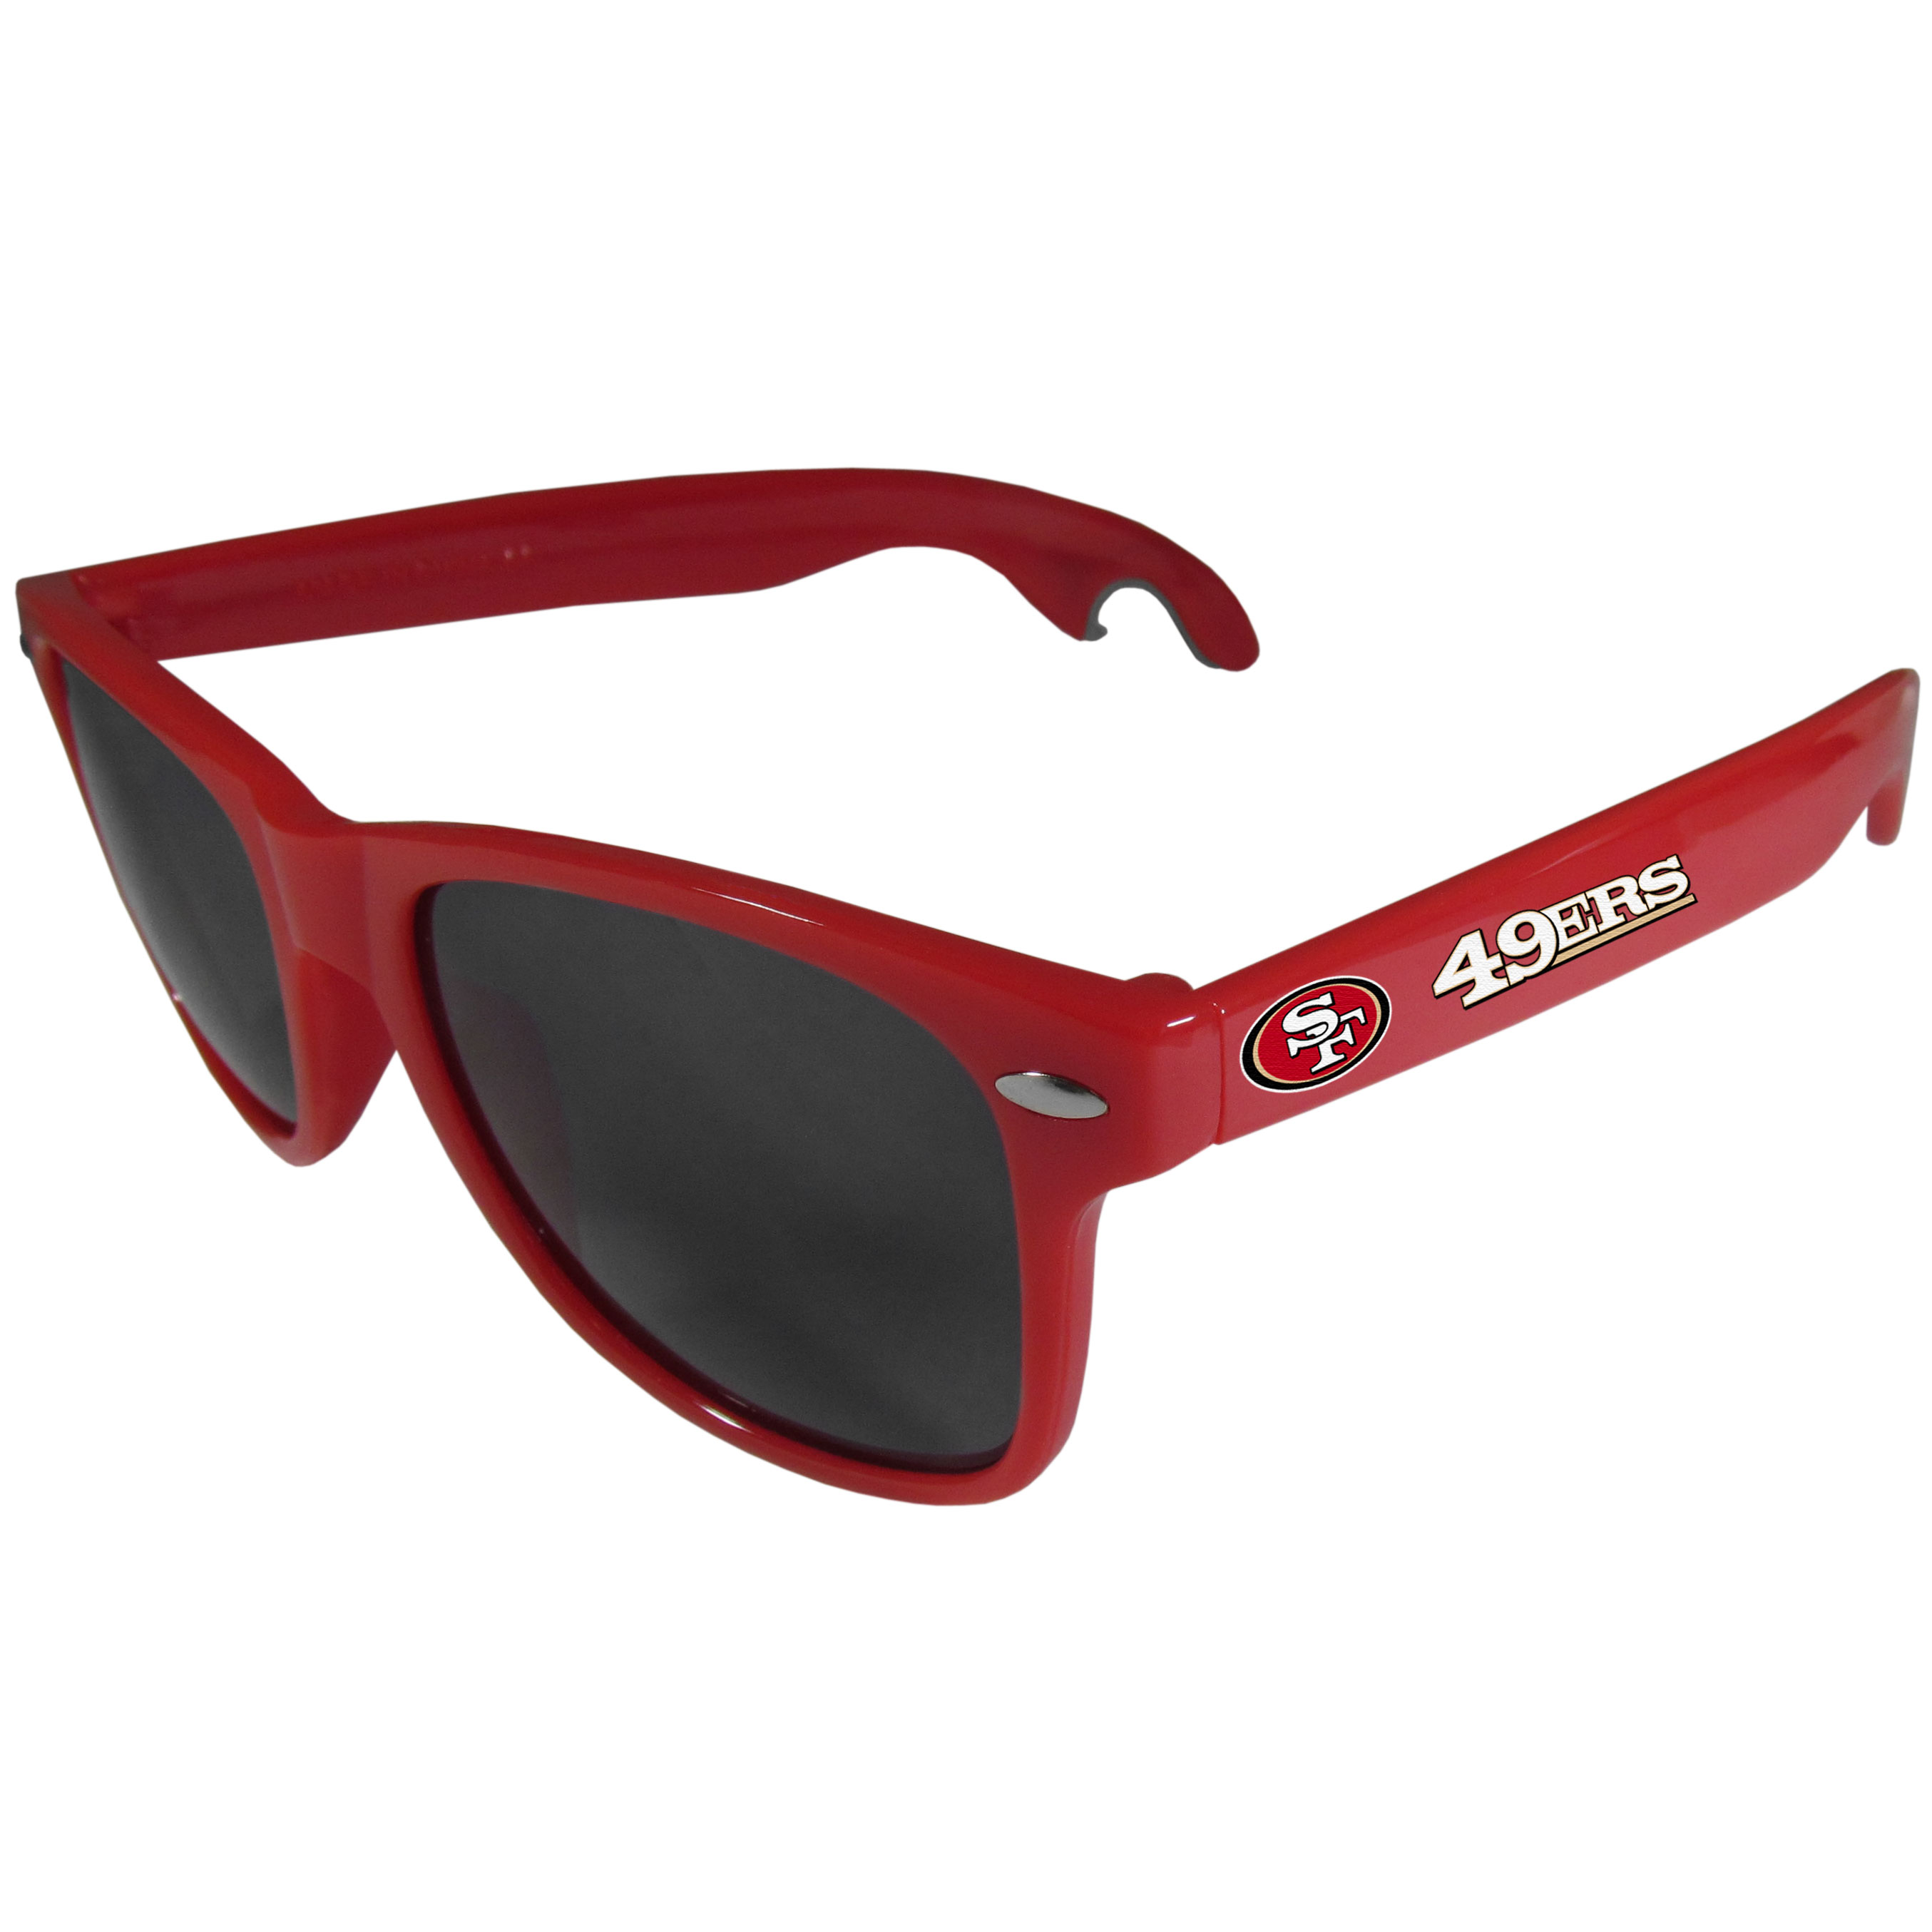 San Francisco 49ers Beachfarer Bottle Opener Sunglasses, Red - Seriously, these sunglasses open bottles! Keep the party going with these amazing San Francisco 49ers bottle opener sunglasses. The stylish retro frames feature team designs on the arms and functional bottle openers on the end of the arms. Whether you are at the beach or having a backyard BBQ on game day, these shades will keep your eyes protected with 100% UVA/UVB protection and keep you hydrated with the handy bottle opener arms.